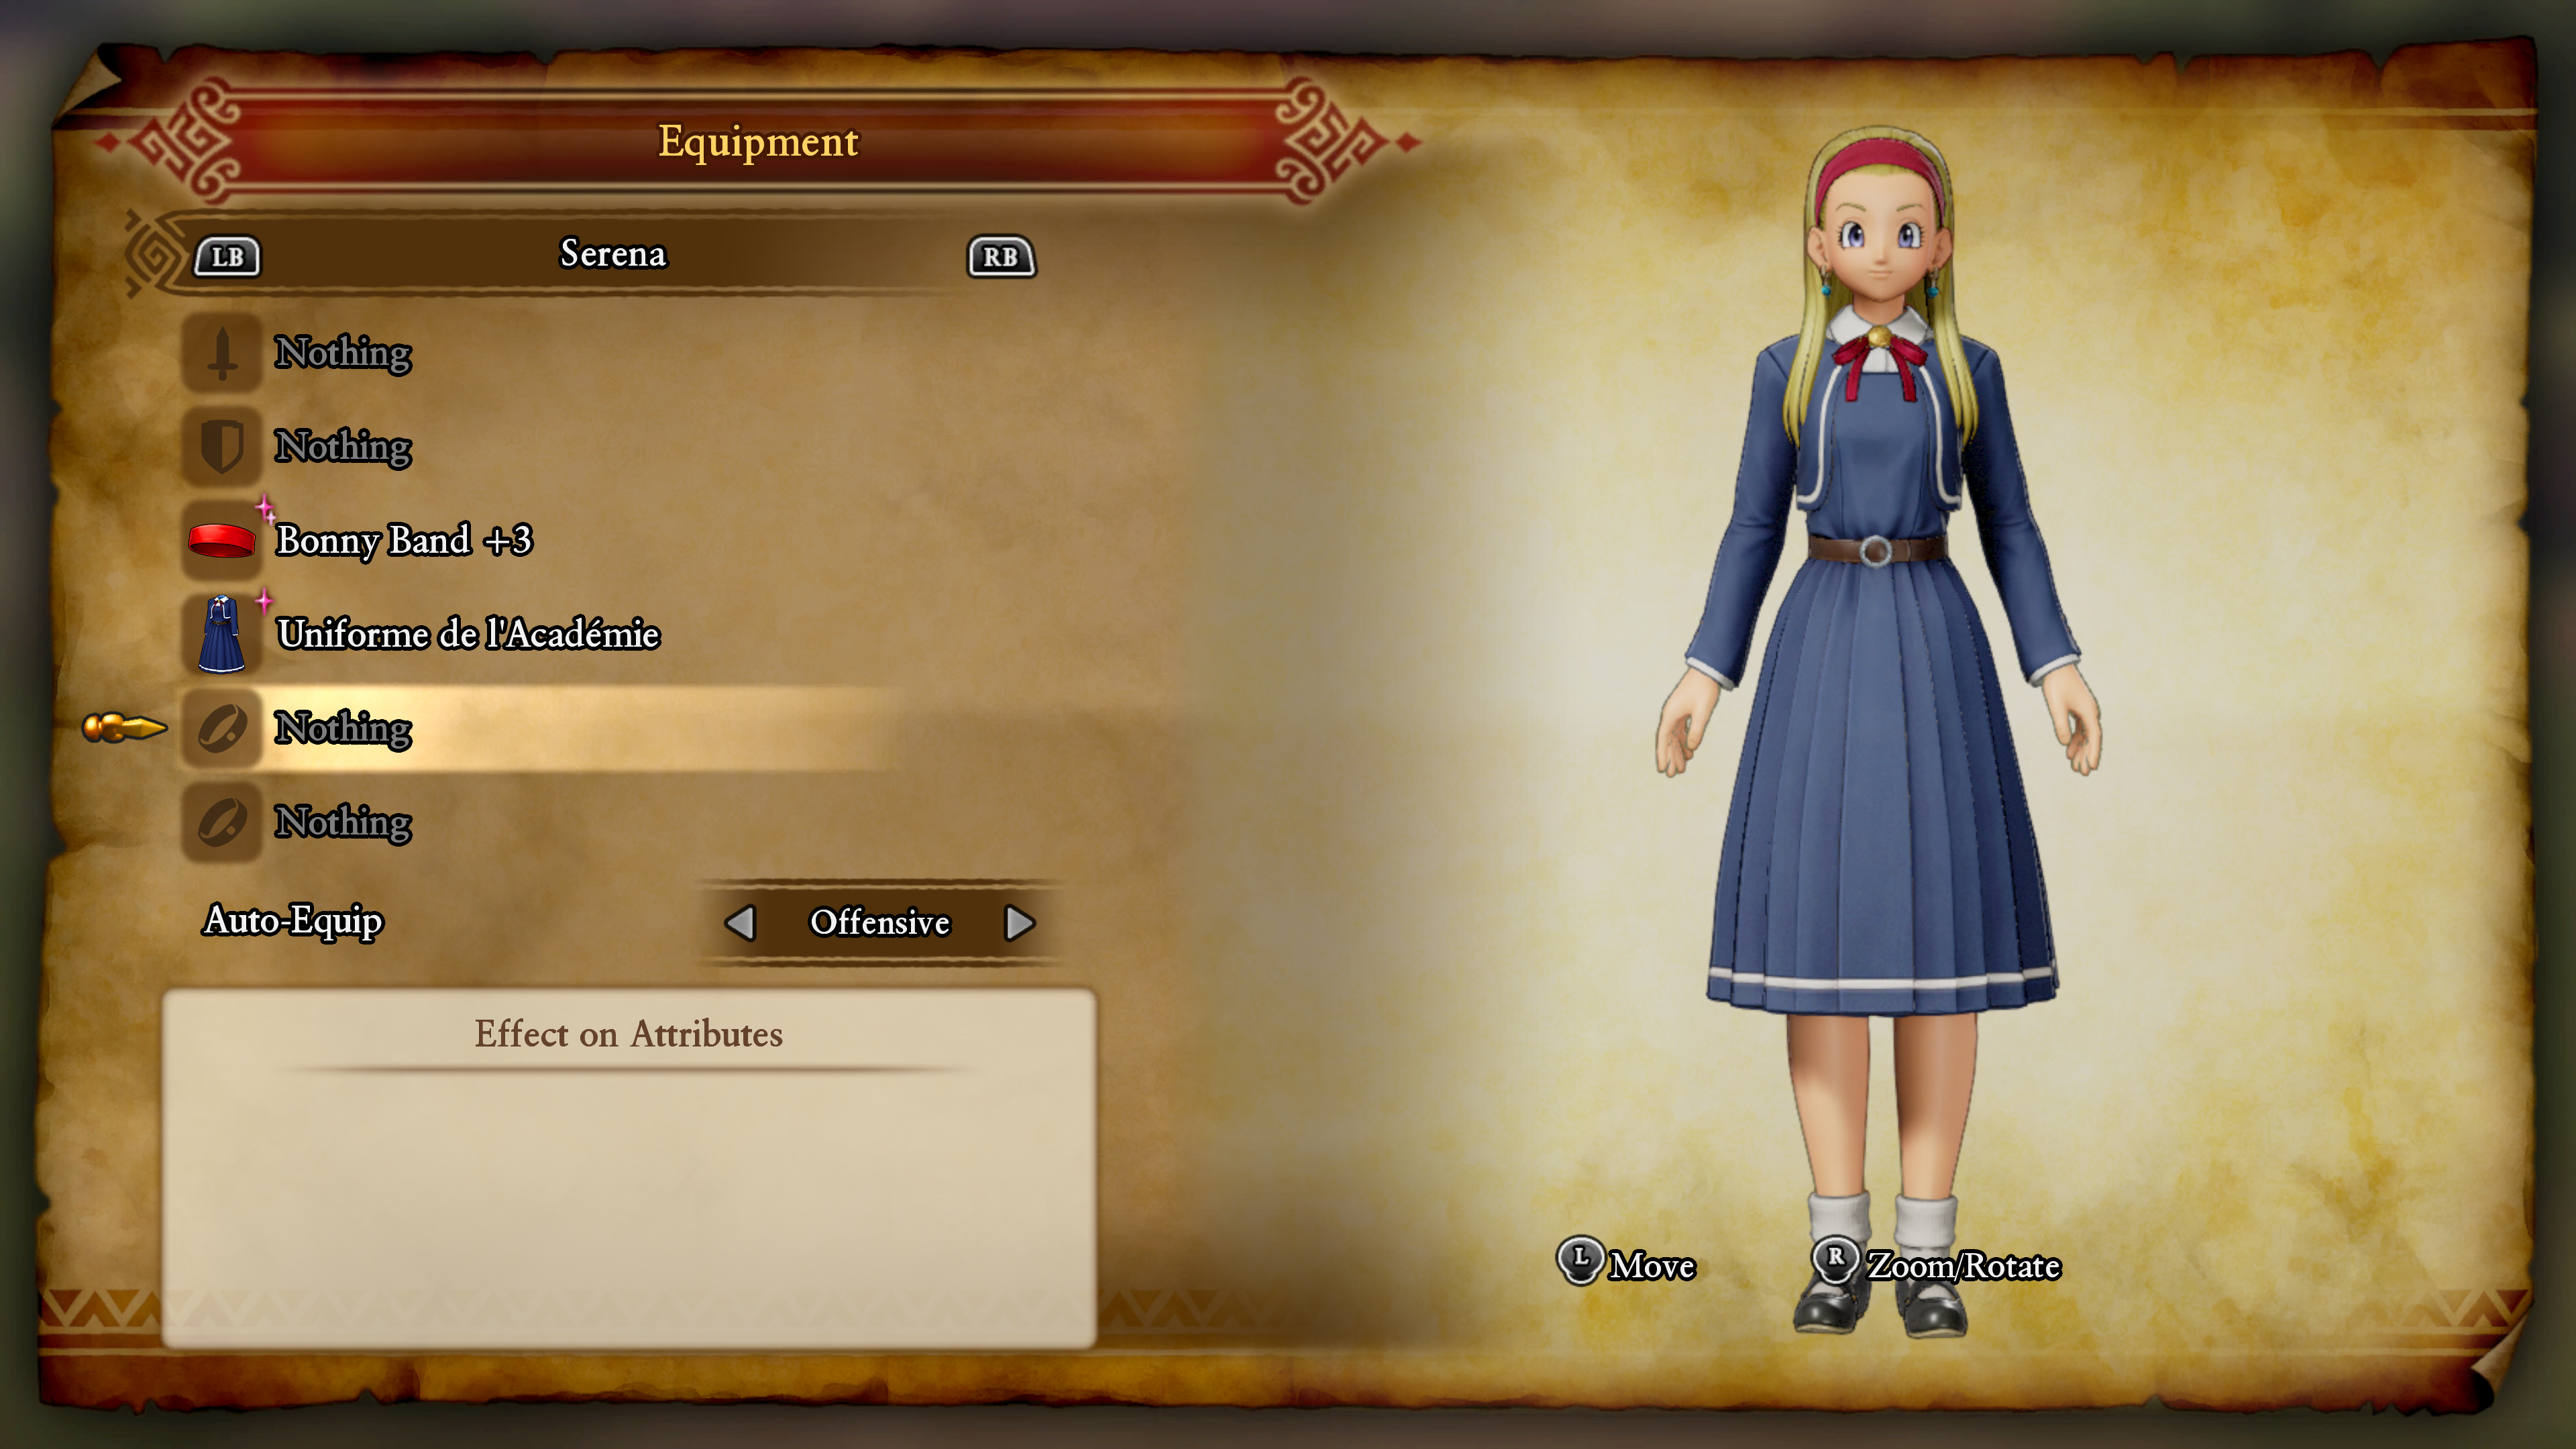 Dqxicostumes Serena Dragon Quest Dedicated Folower Of